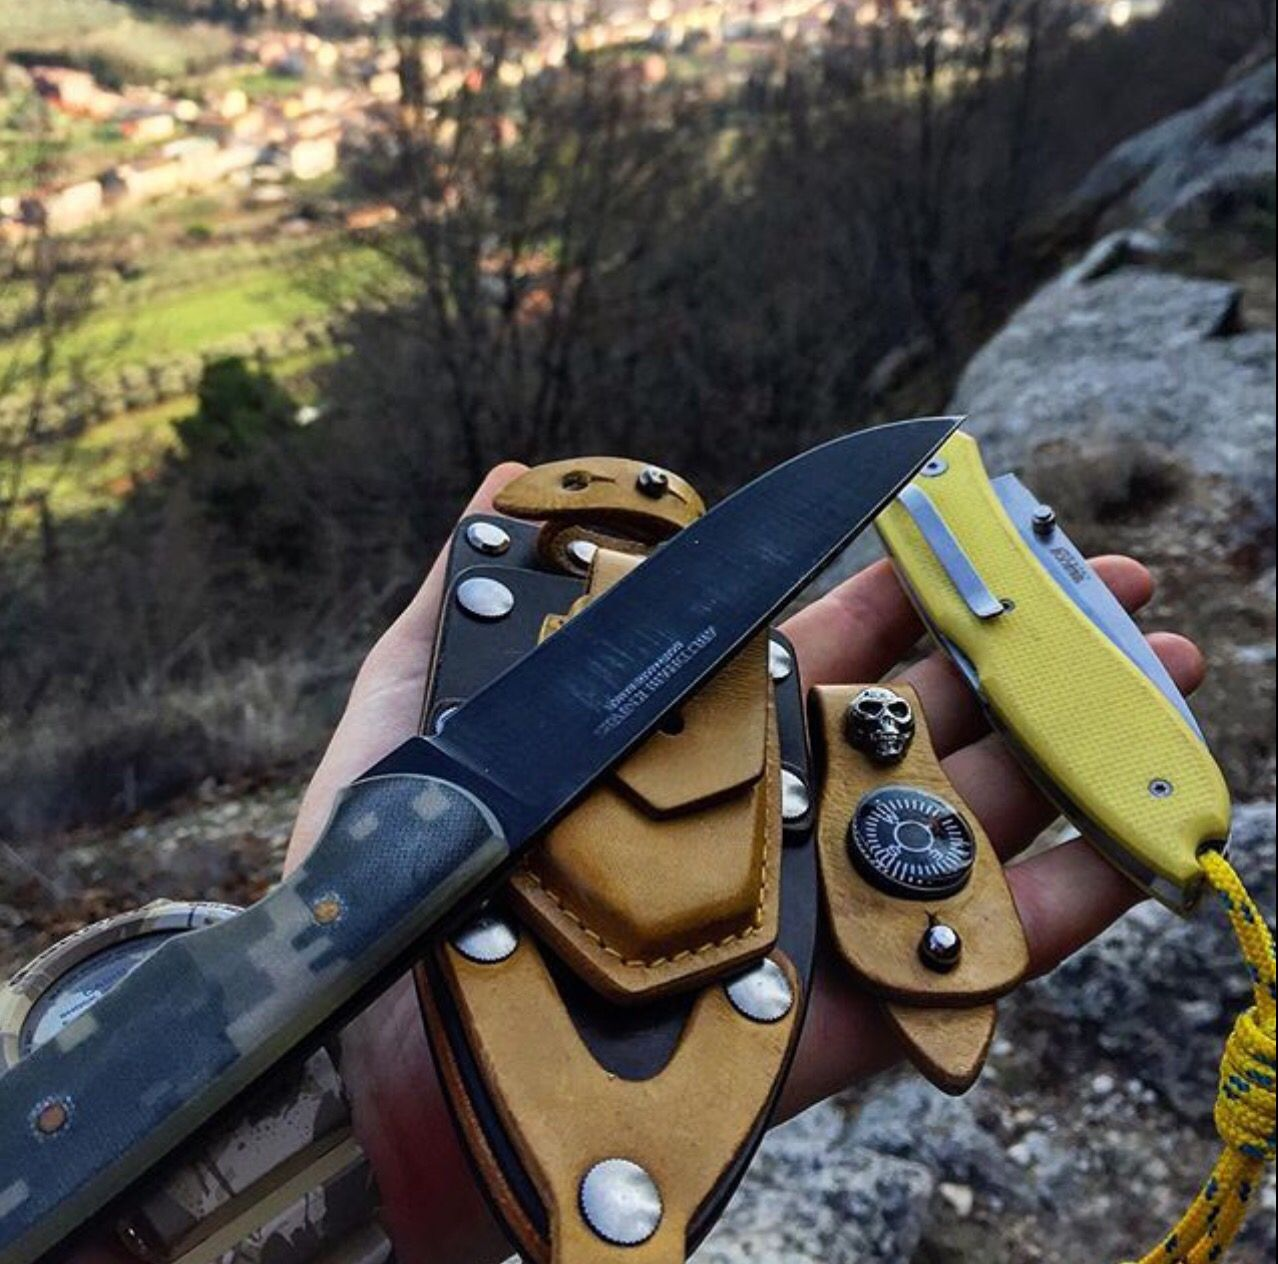 Day hike carrying some new gear. #dayhike #hills #adventures #hikingadventures #knives #knifepic #rocks #fixie #bladearmour #tacticool #multicam #knifenut #knifeaddicted #trecking #abudhabiknives #panorama #everydaycarry #everyday_tactical #pocketdump #geardump #gear #tacticool